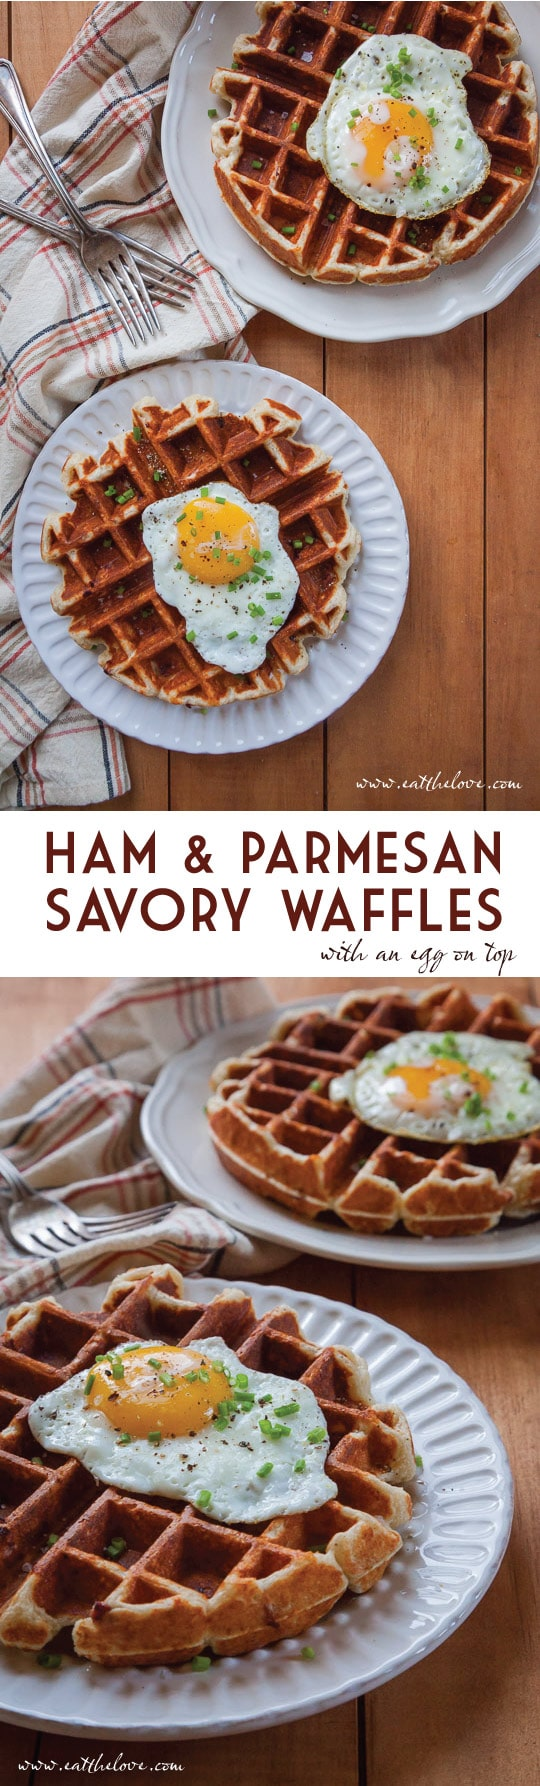 Ham and Parmesan Waffles with a fried egg on top! Super easy to make but super fancy pants to serve!